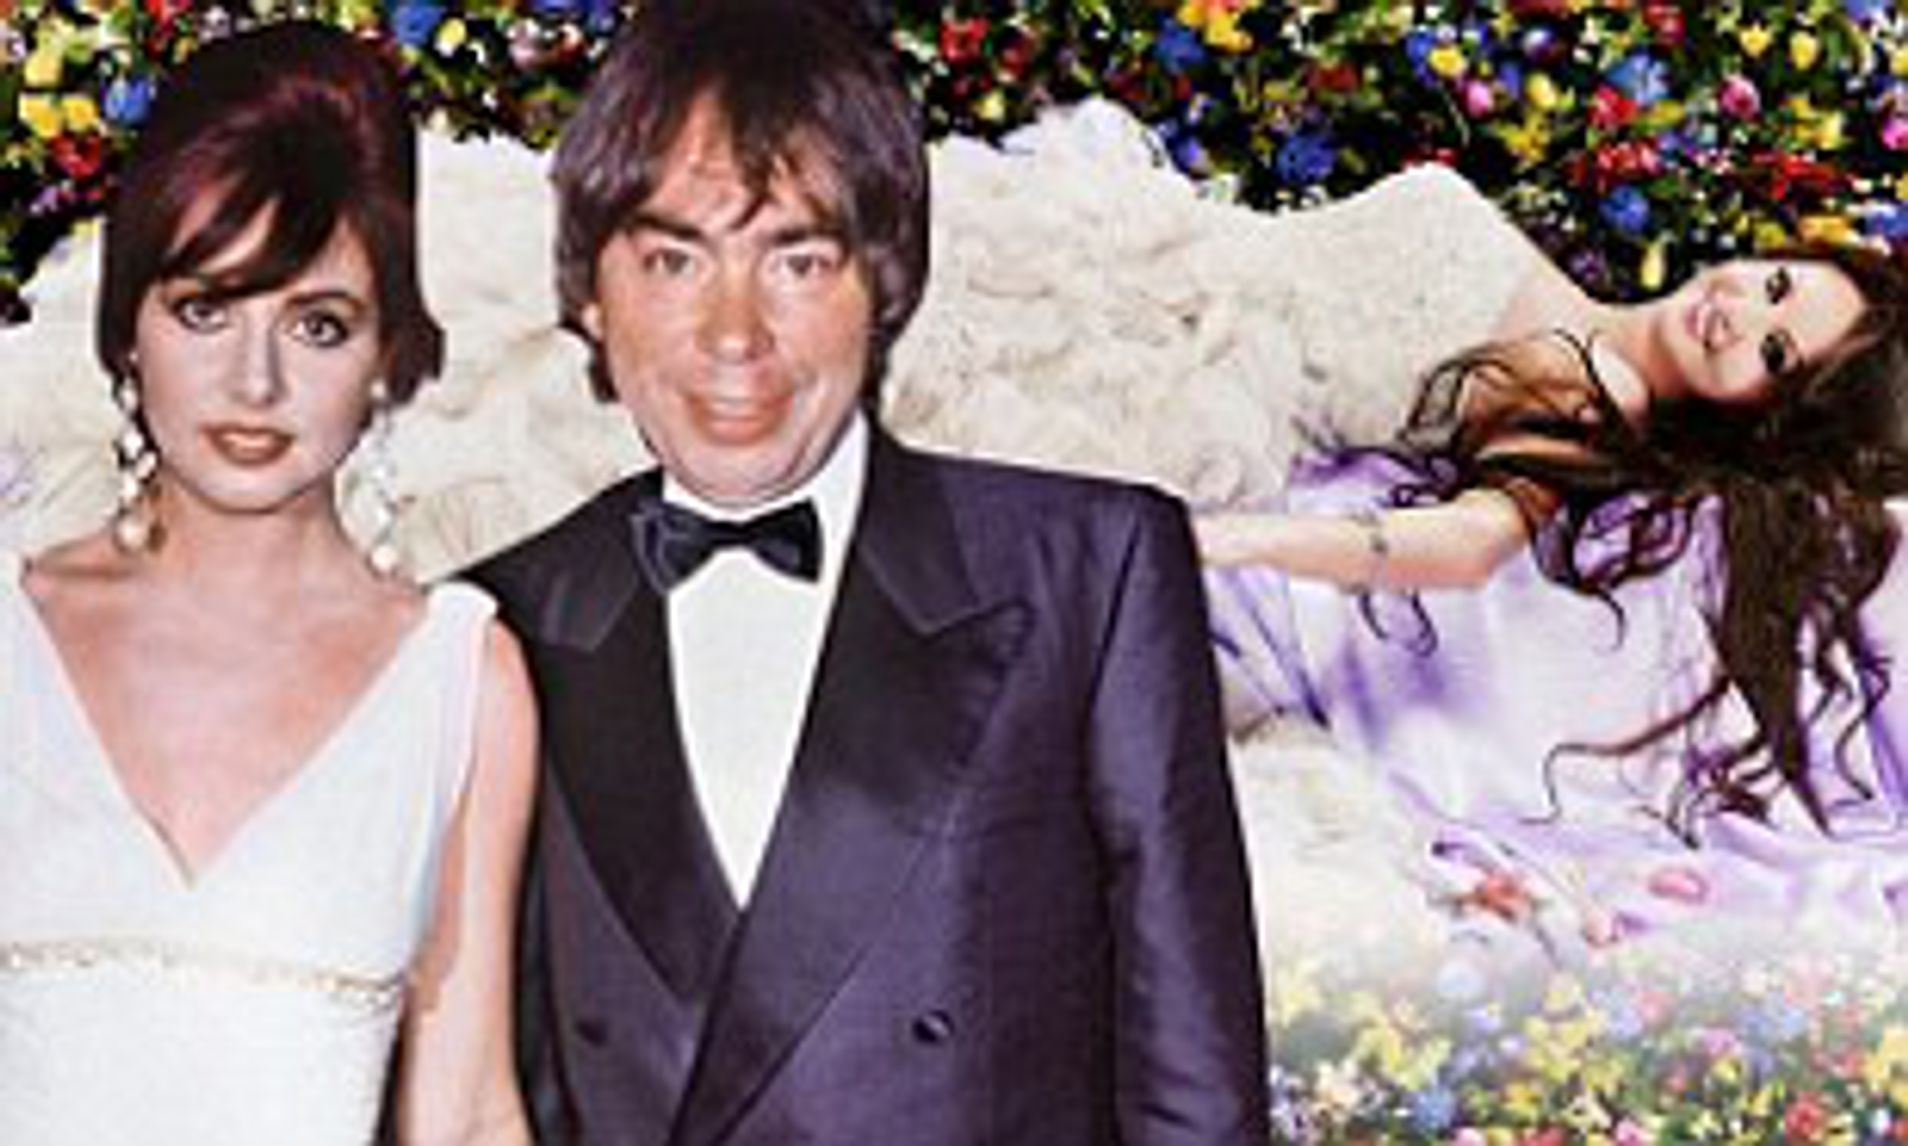 Who was andrew lloyd webber married to